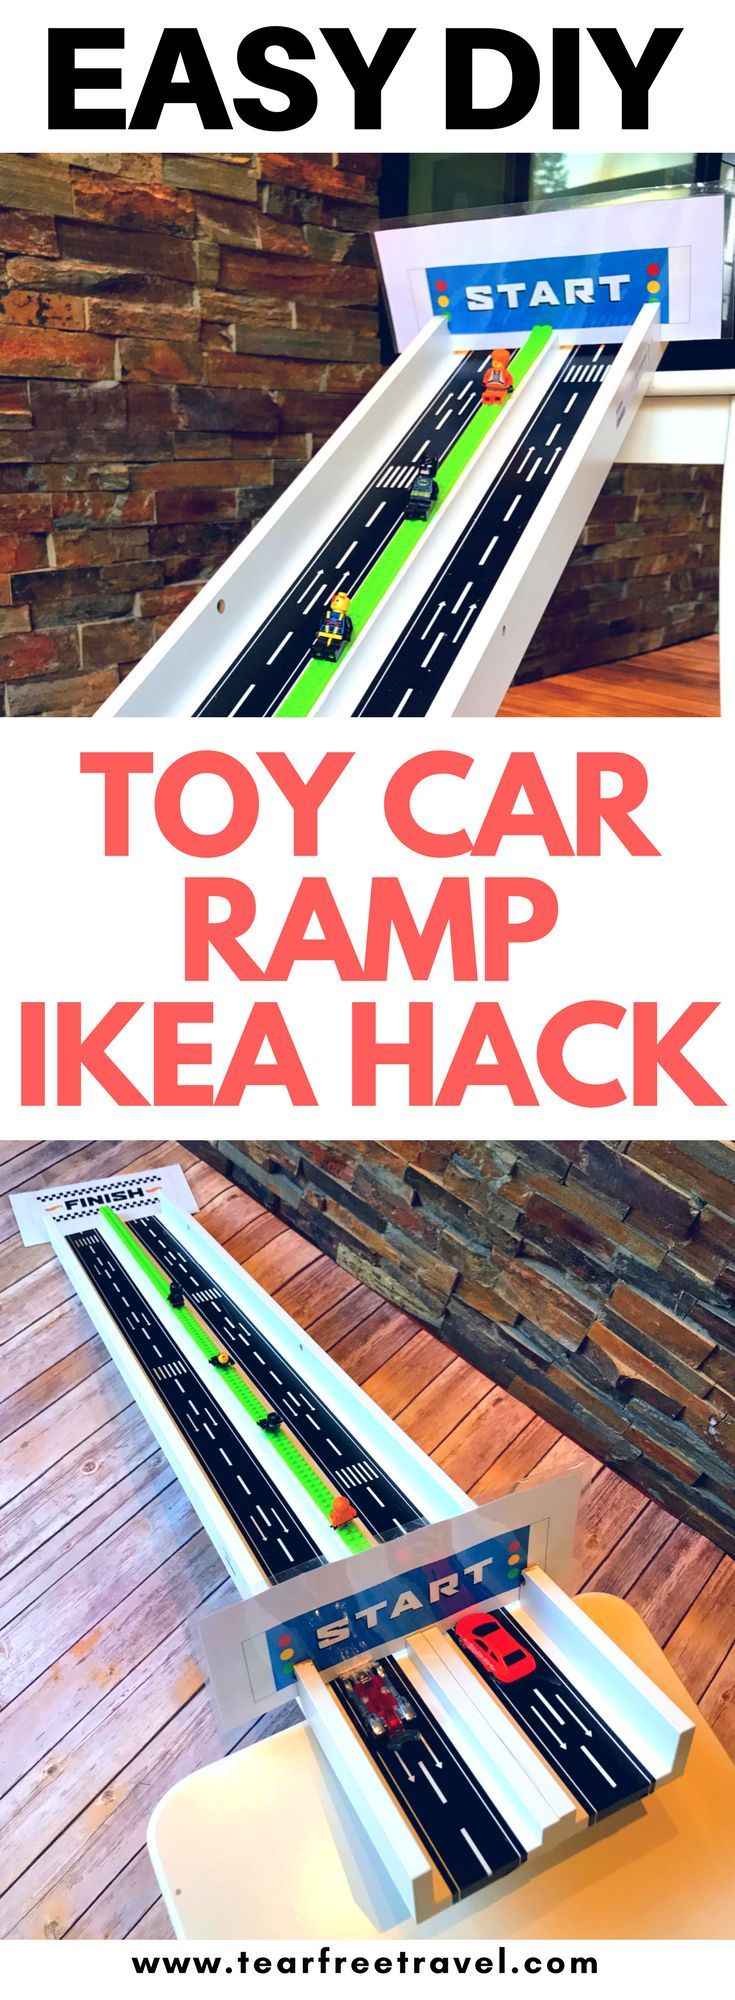 The is the easiest DIY toy car ramp ever! This homemade car ramp will keep your little ones entertained for hours! DIY hot wheels track for toy car racing! #diy #diyramp #diykids #easydiy